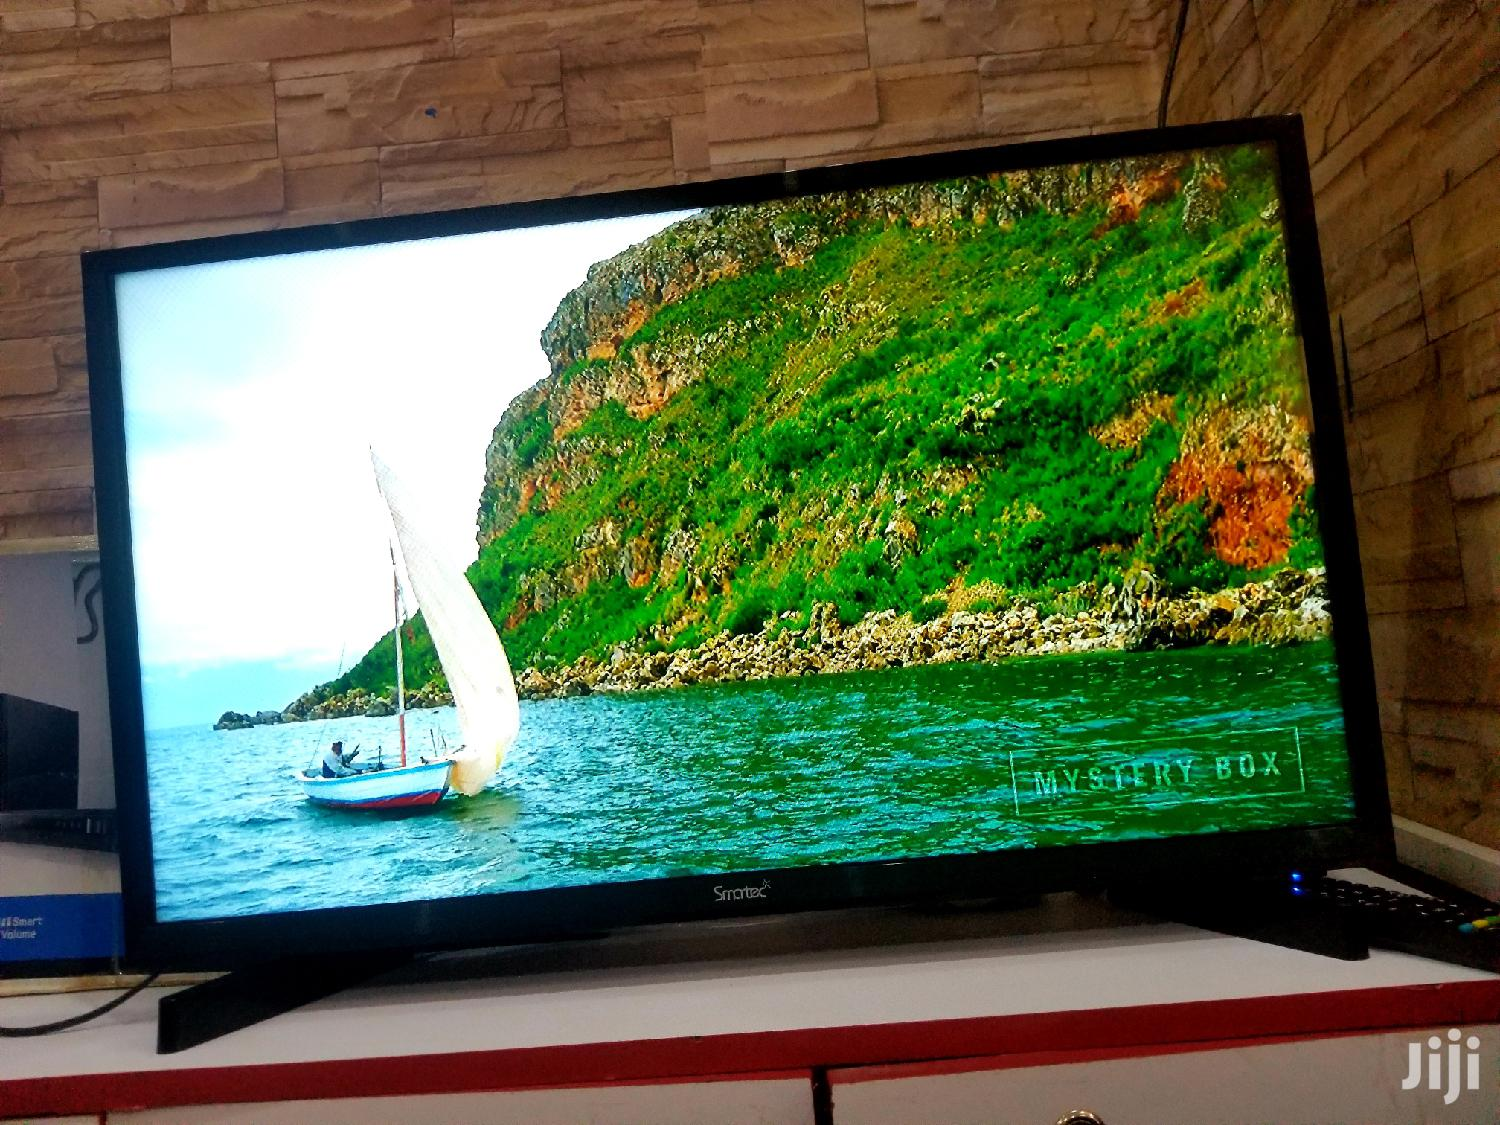 Smartec Flat Screen TV 32 Inches | TV & DVD Equipment for sale in Kampala, Central Region, Uganda